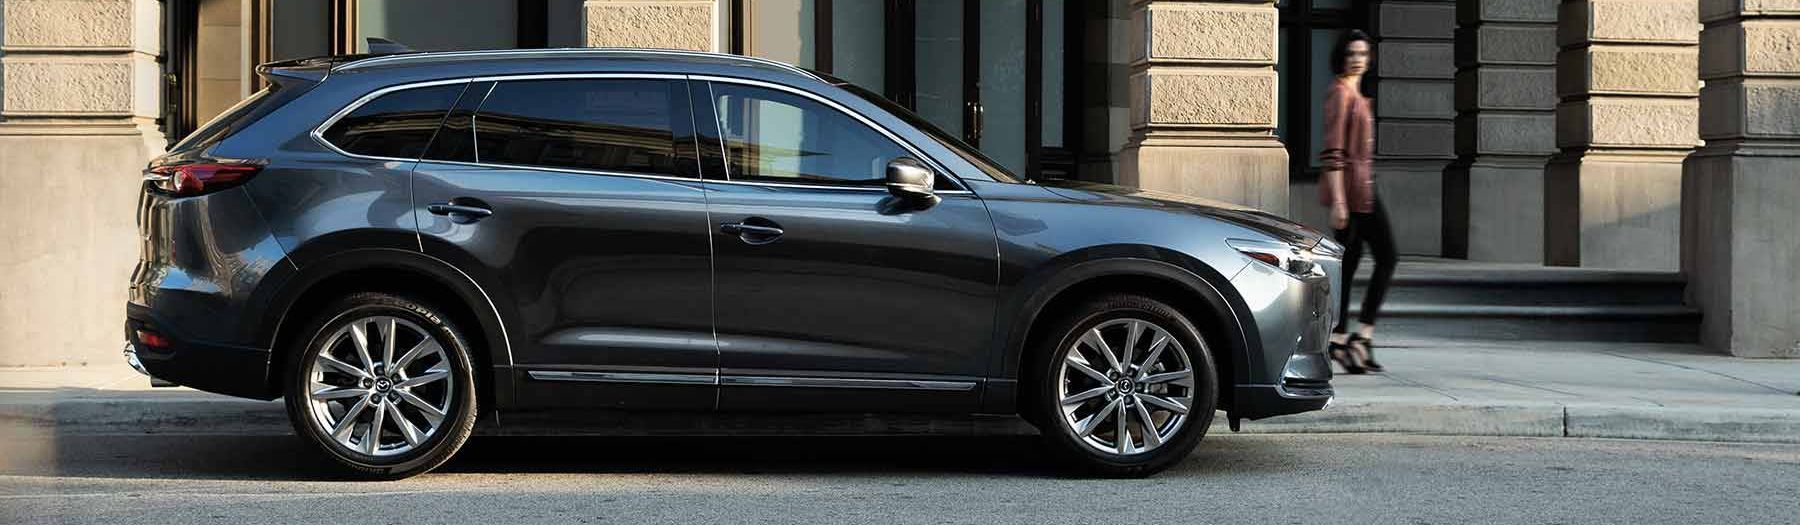 2019 Mazda CX-9 for Sale near Clearwater, FL